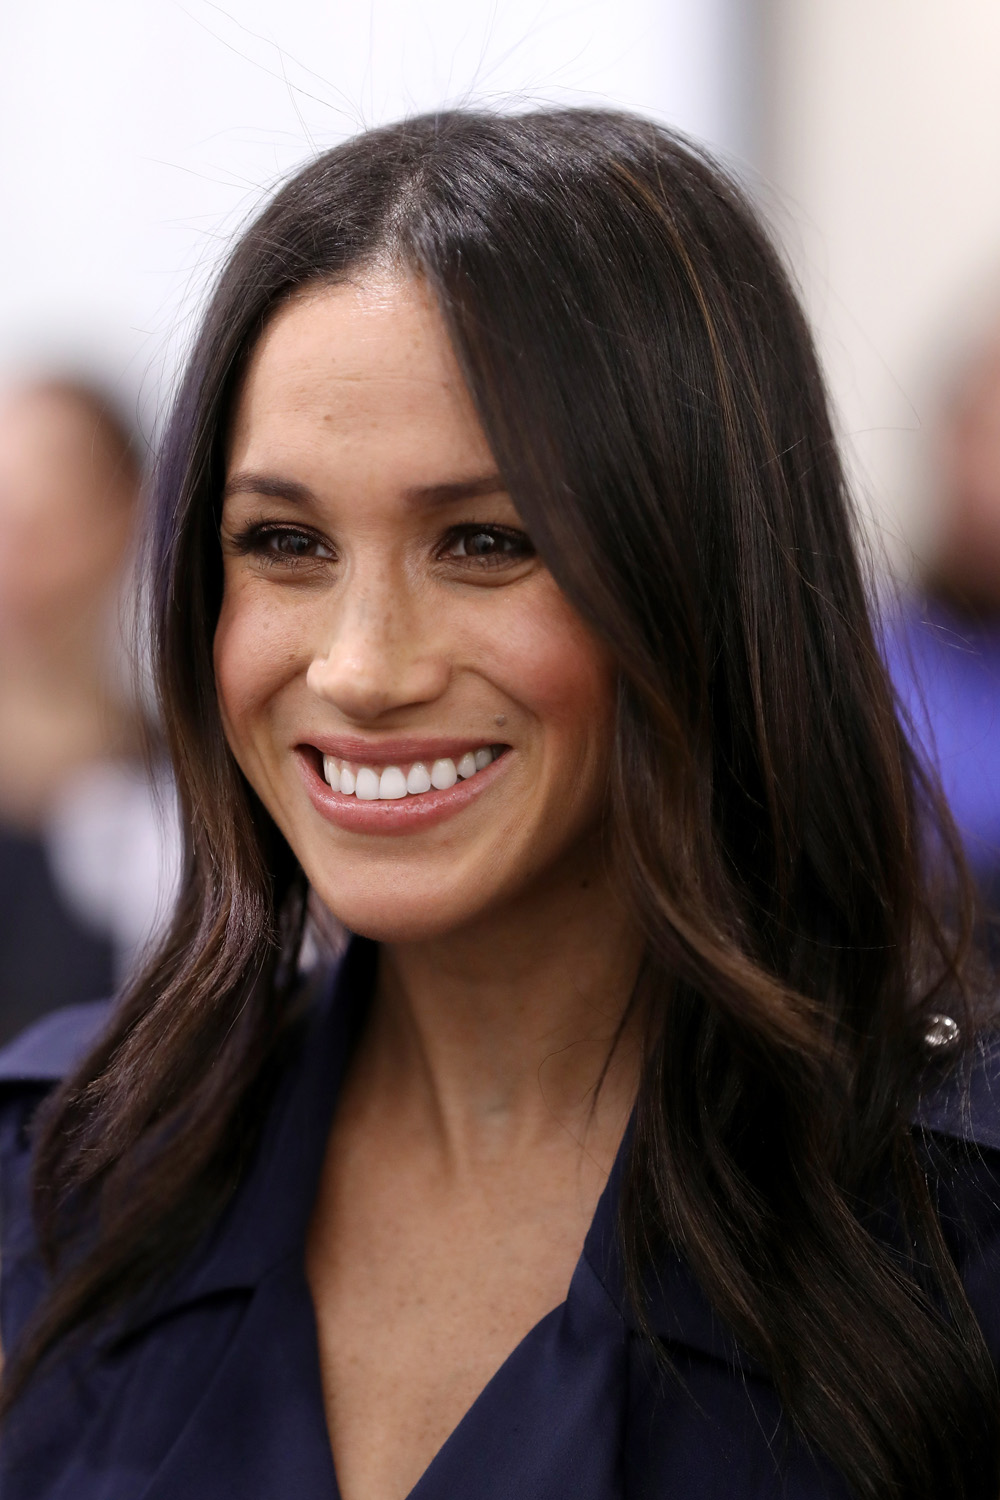 Las claves beauty de Meghan Markle